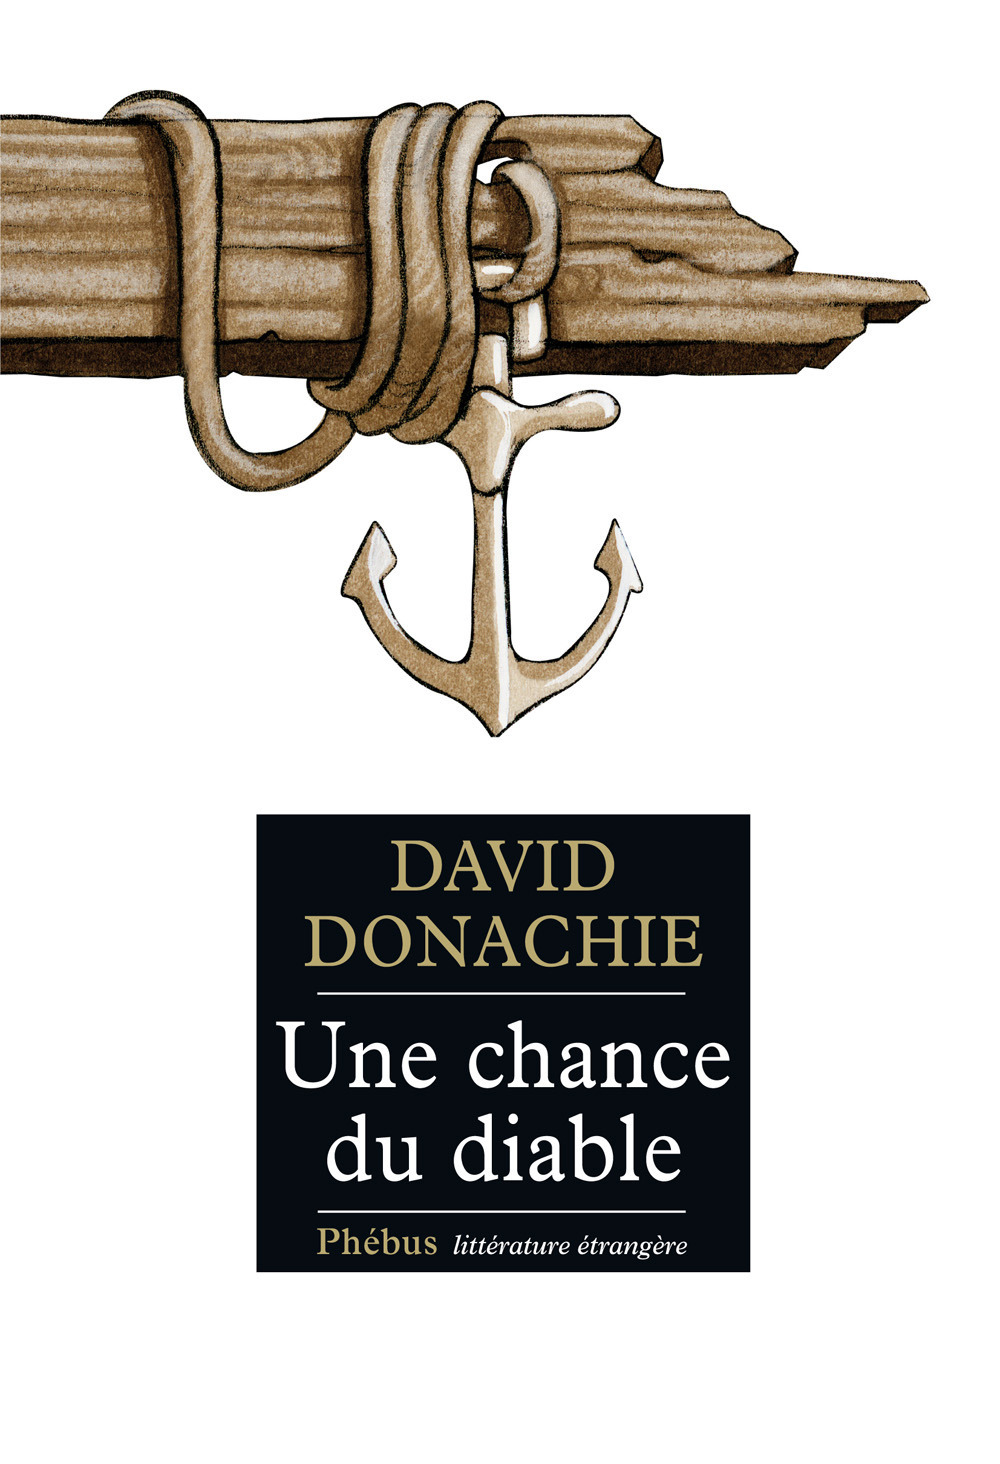 David Donachie Une chance du diable